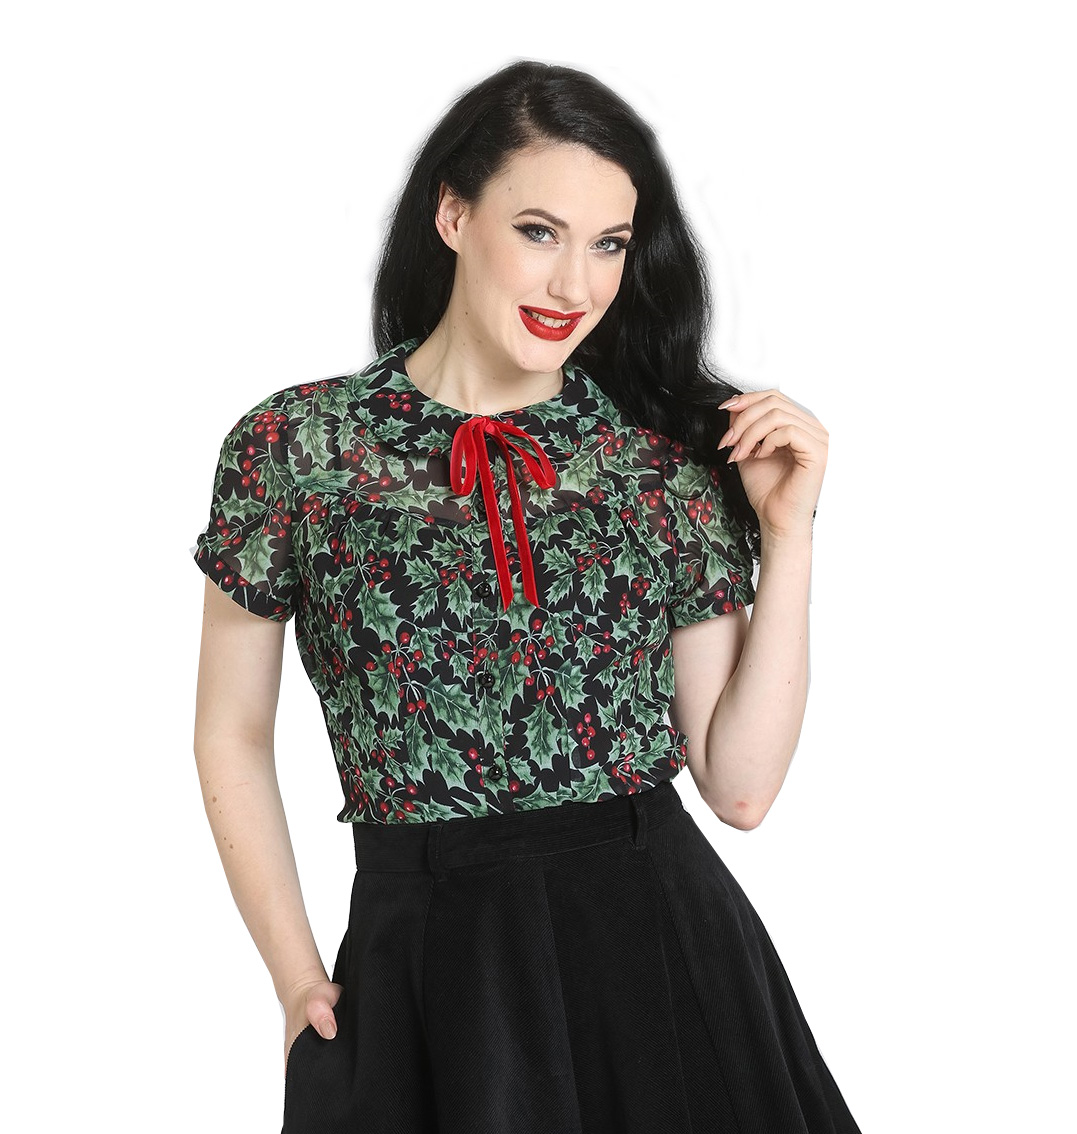 Hell-Bunny-50s-Shirt-Top-Christmas-Festive-HOLLY-Berry-Blouse-Black-All-Sizes thumbnail 5